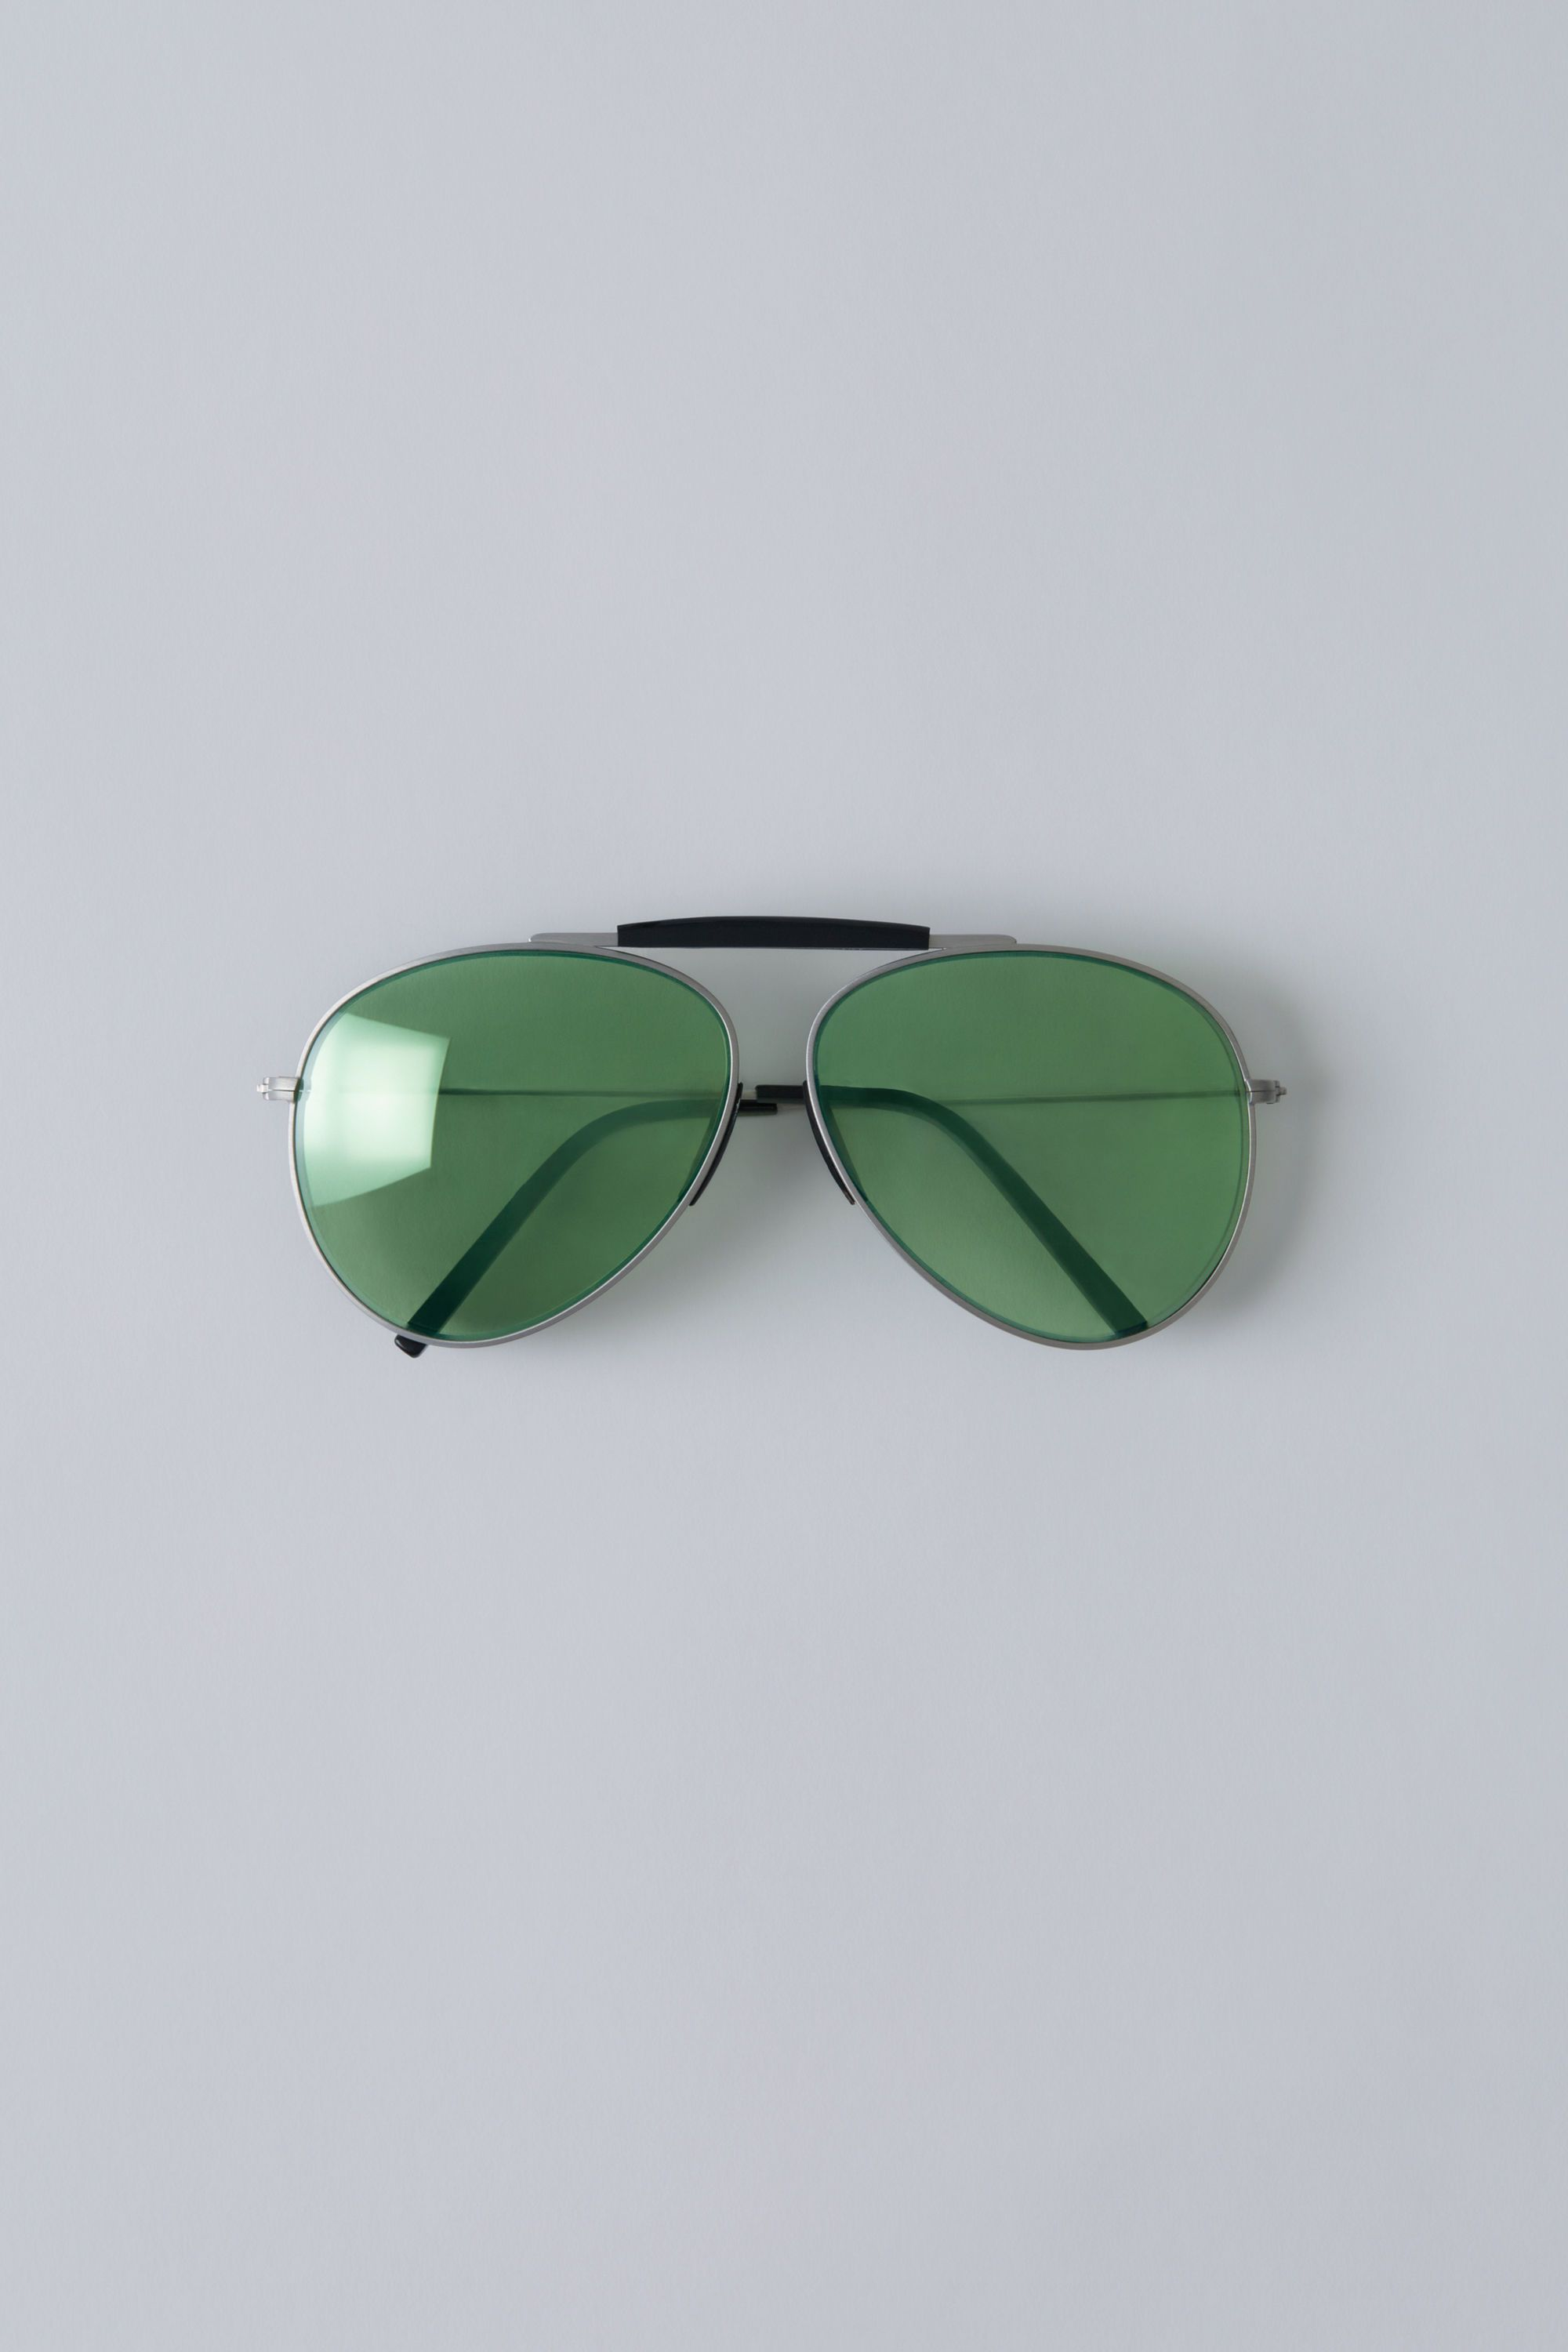 Acne Studios   Howard Green Aviator Sunglasses.   My Style 3   Acne ... d00828ba88c